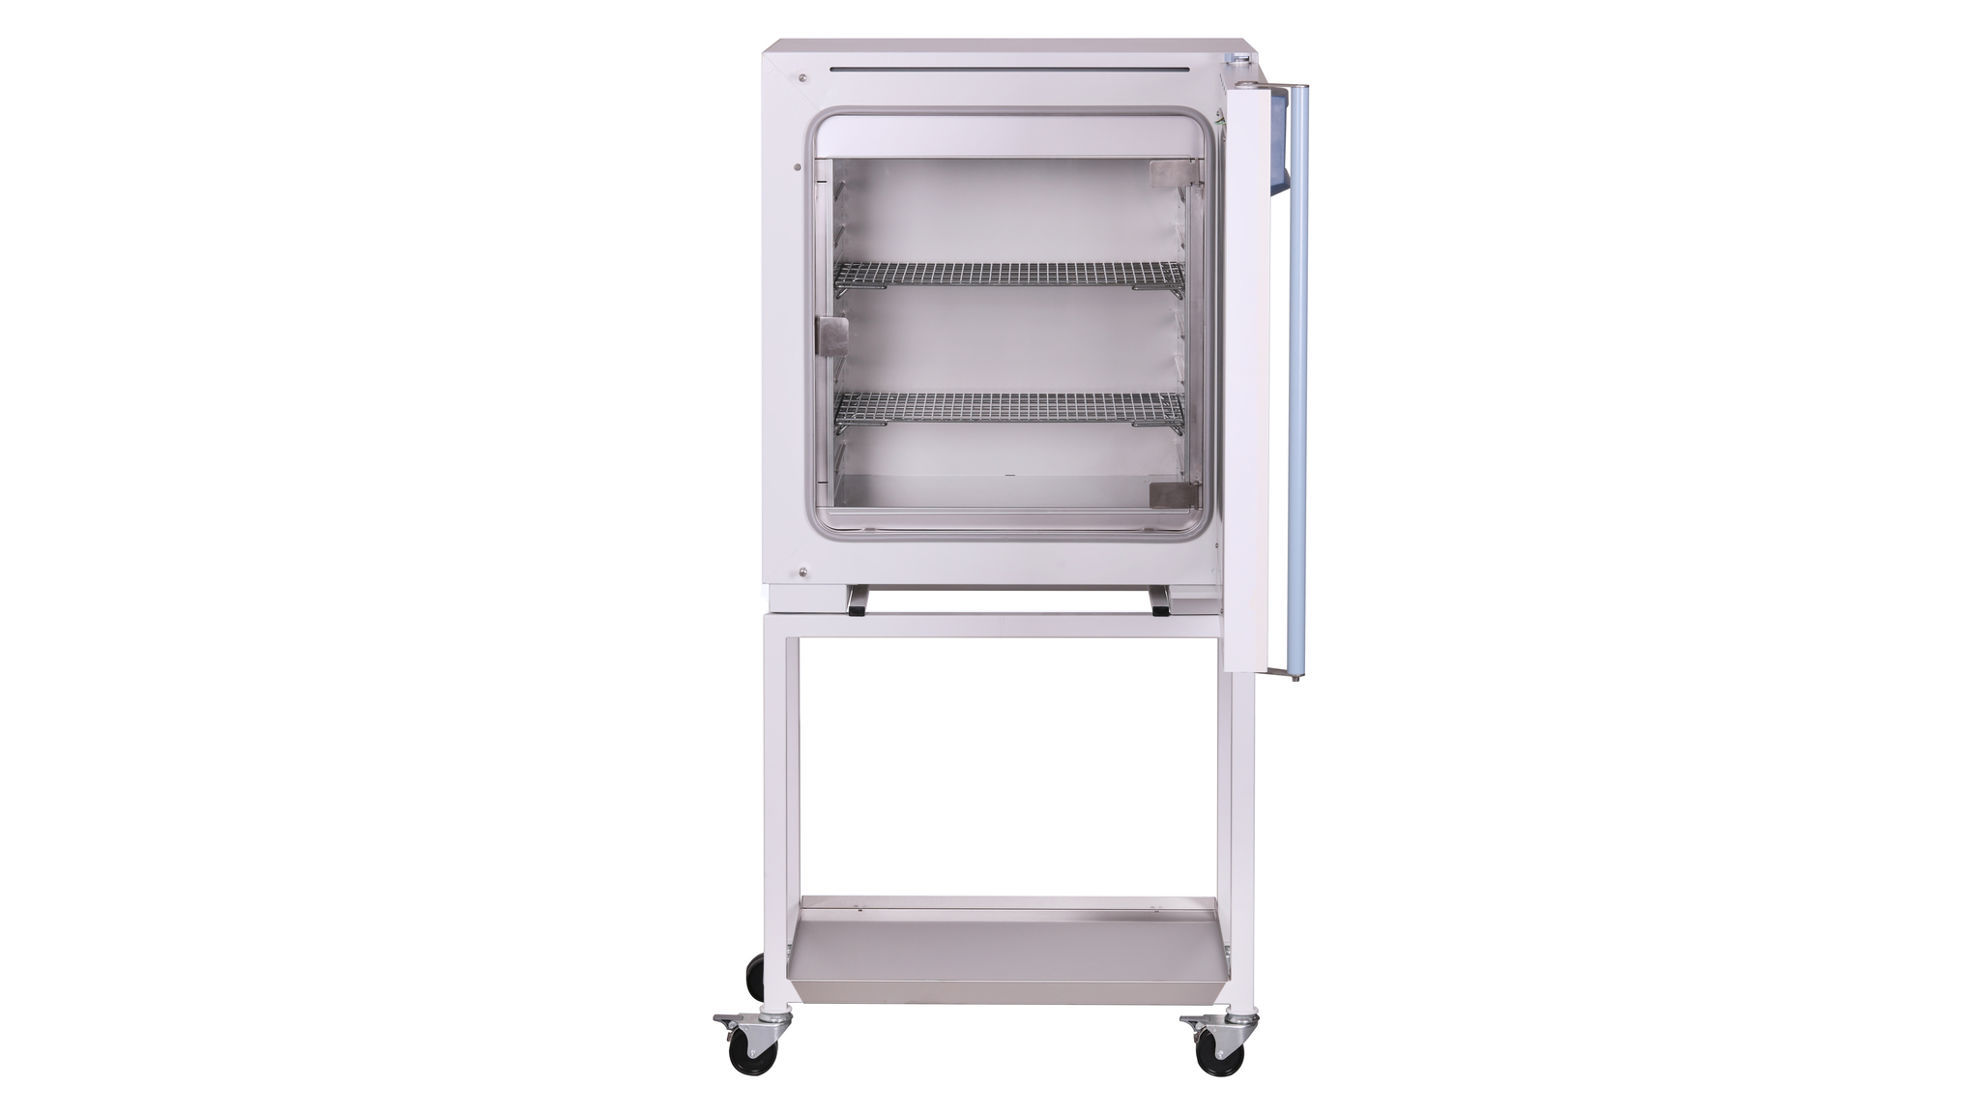 Picture of BMT Incucell ECO Gravity Convection Incubators